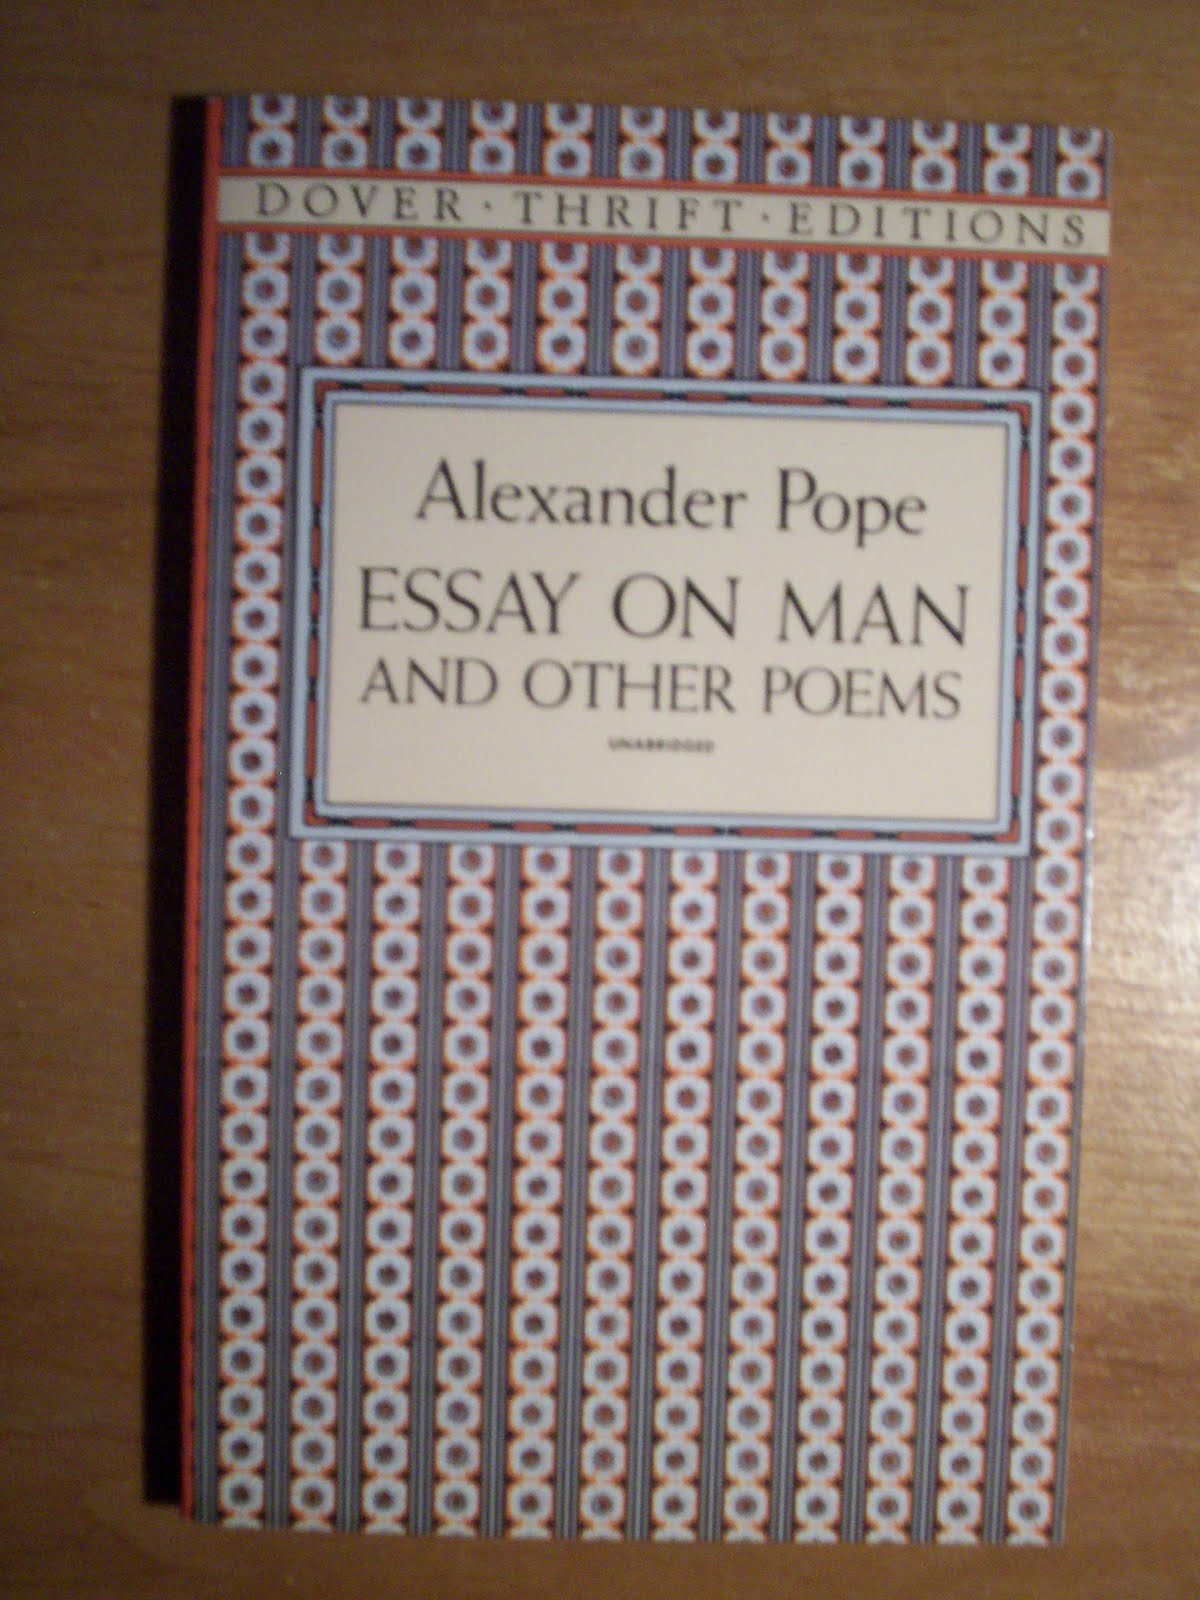 door stop novels required poet alexander pope i can t even think of any sort of witty or snarky remarks about this stuff poetry is just so hard for me anyway and then these four poems just seemed to